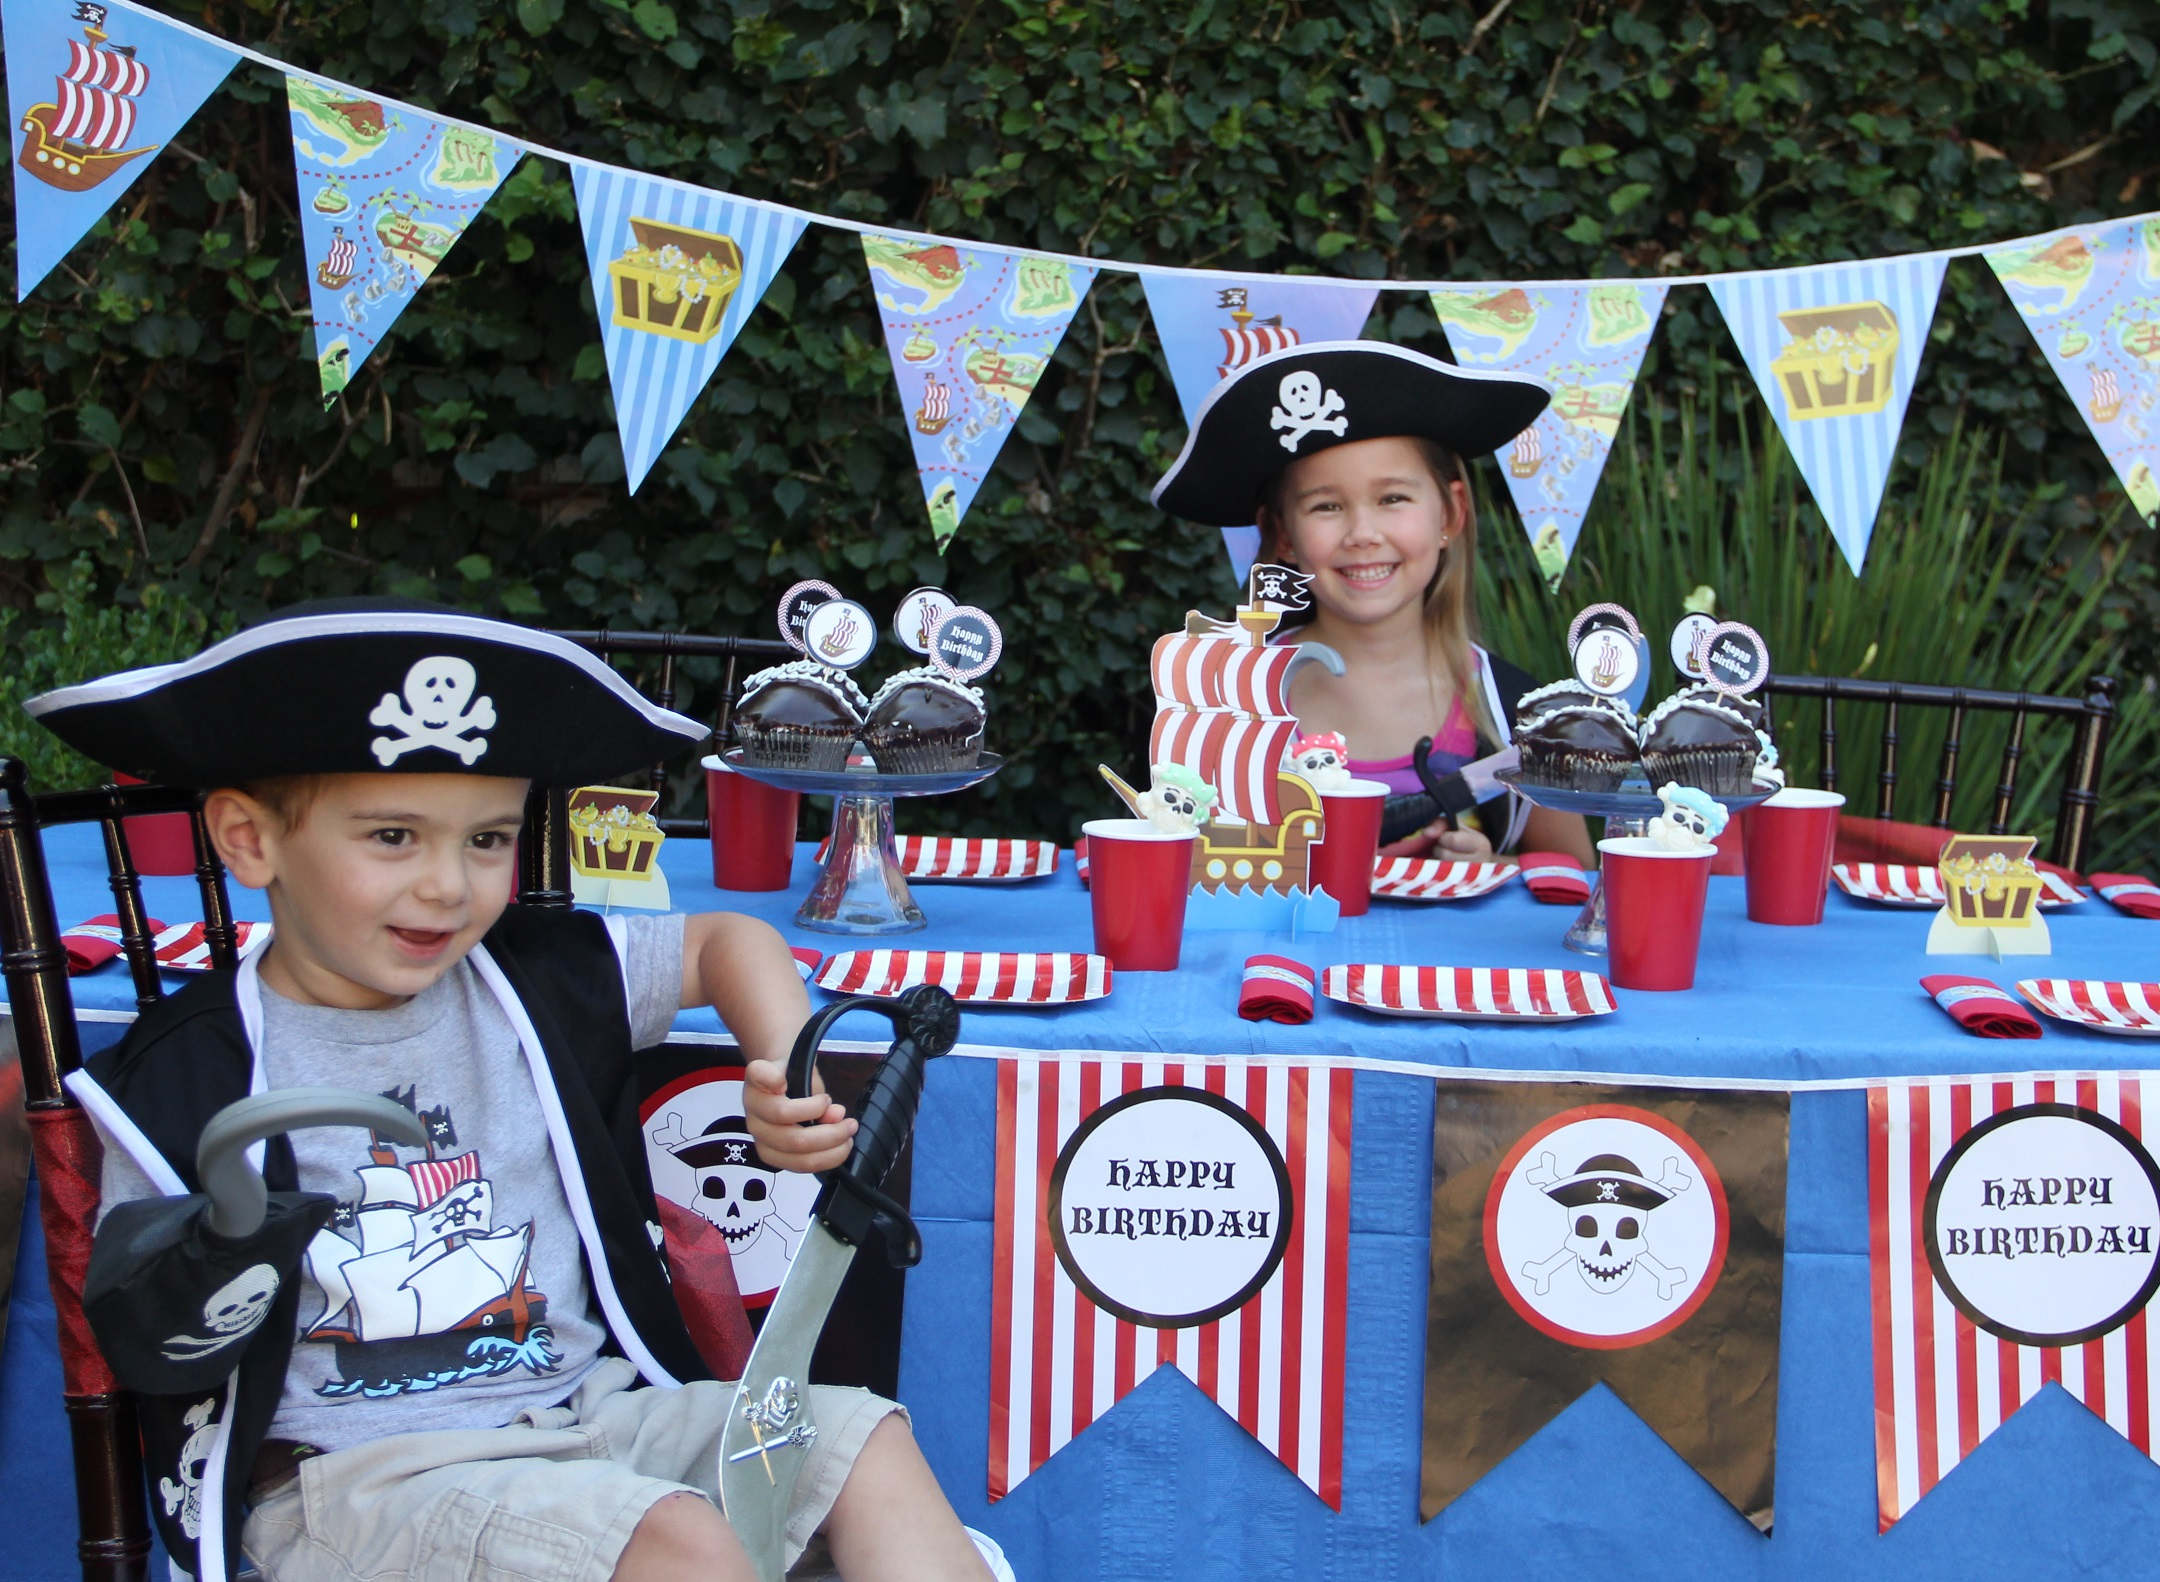 2. 'Pirate' party for boys